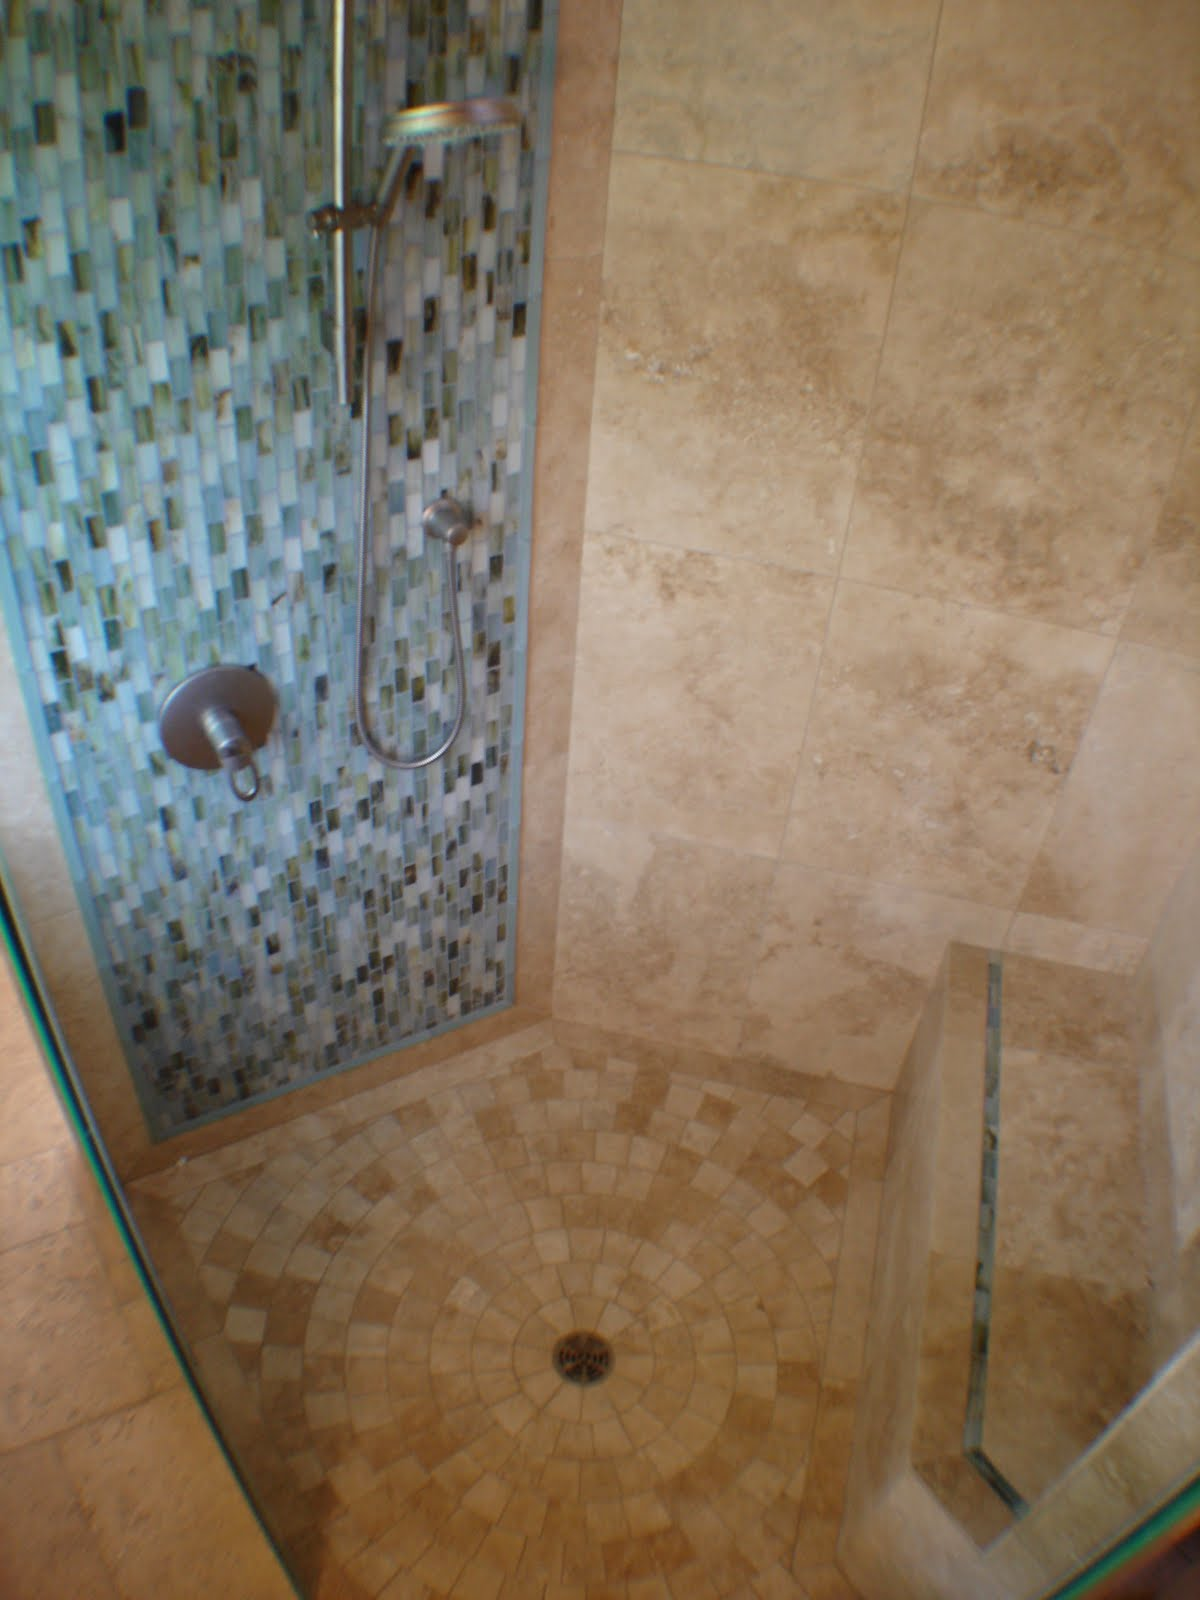 The tile shop design by kirsty 7 18 10 7 25 10 for Bathroom floor tile ideas